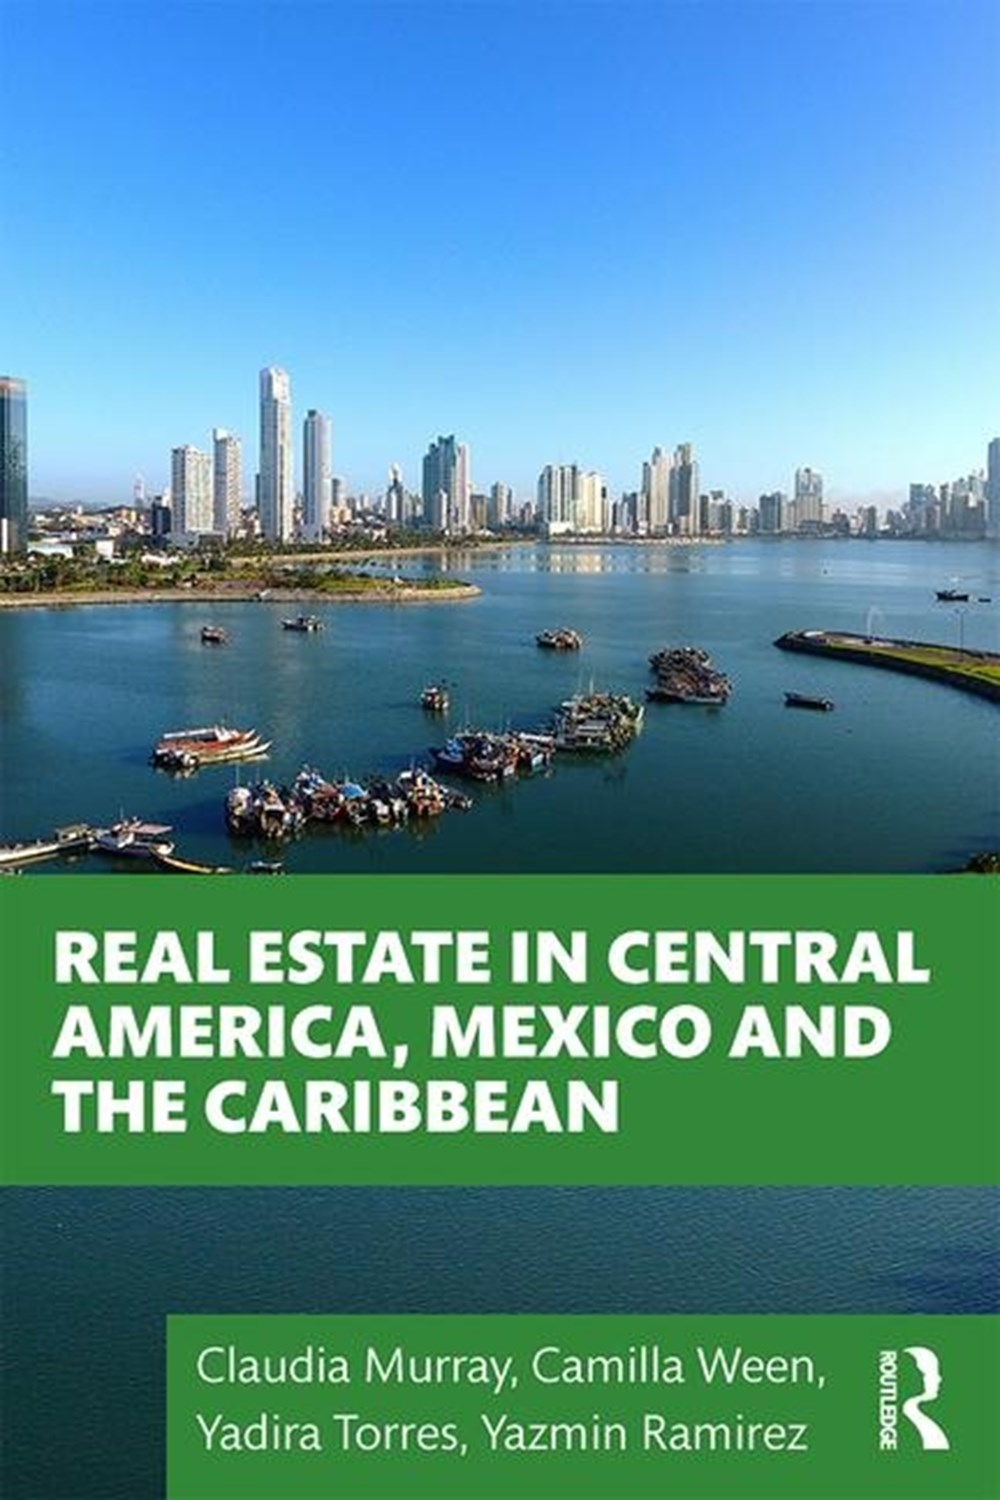 Real Estate in Central America, Mexico and the Caribbean